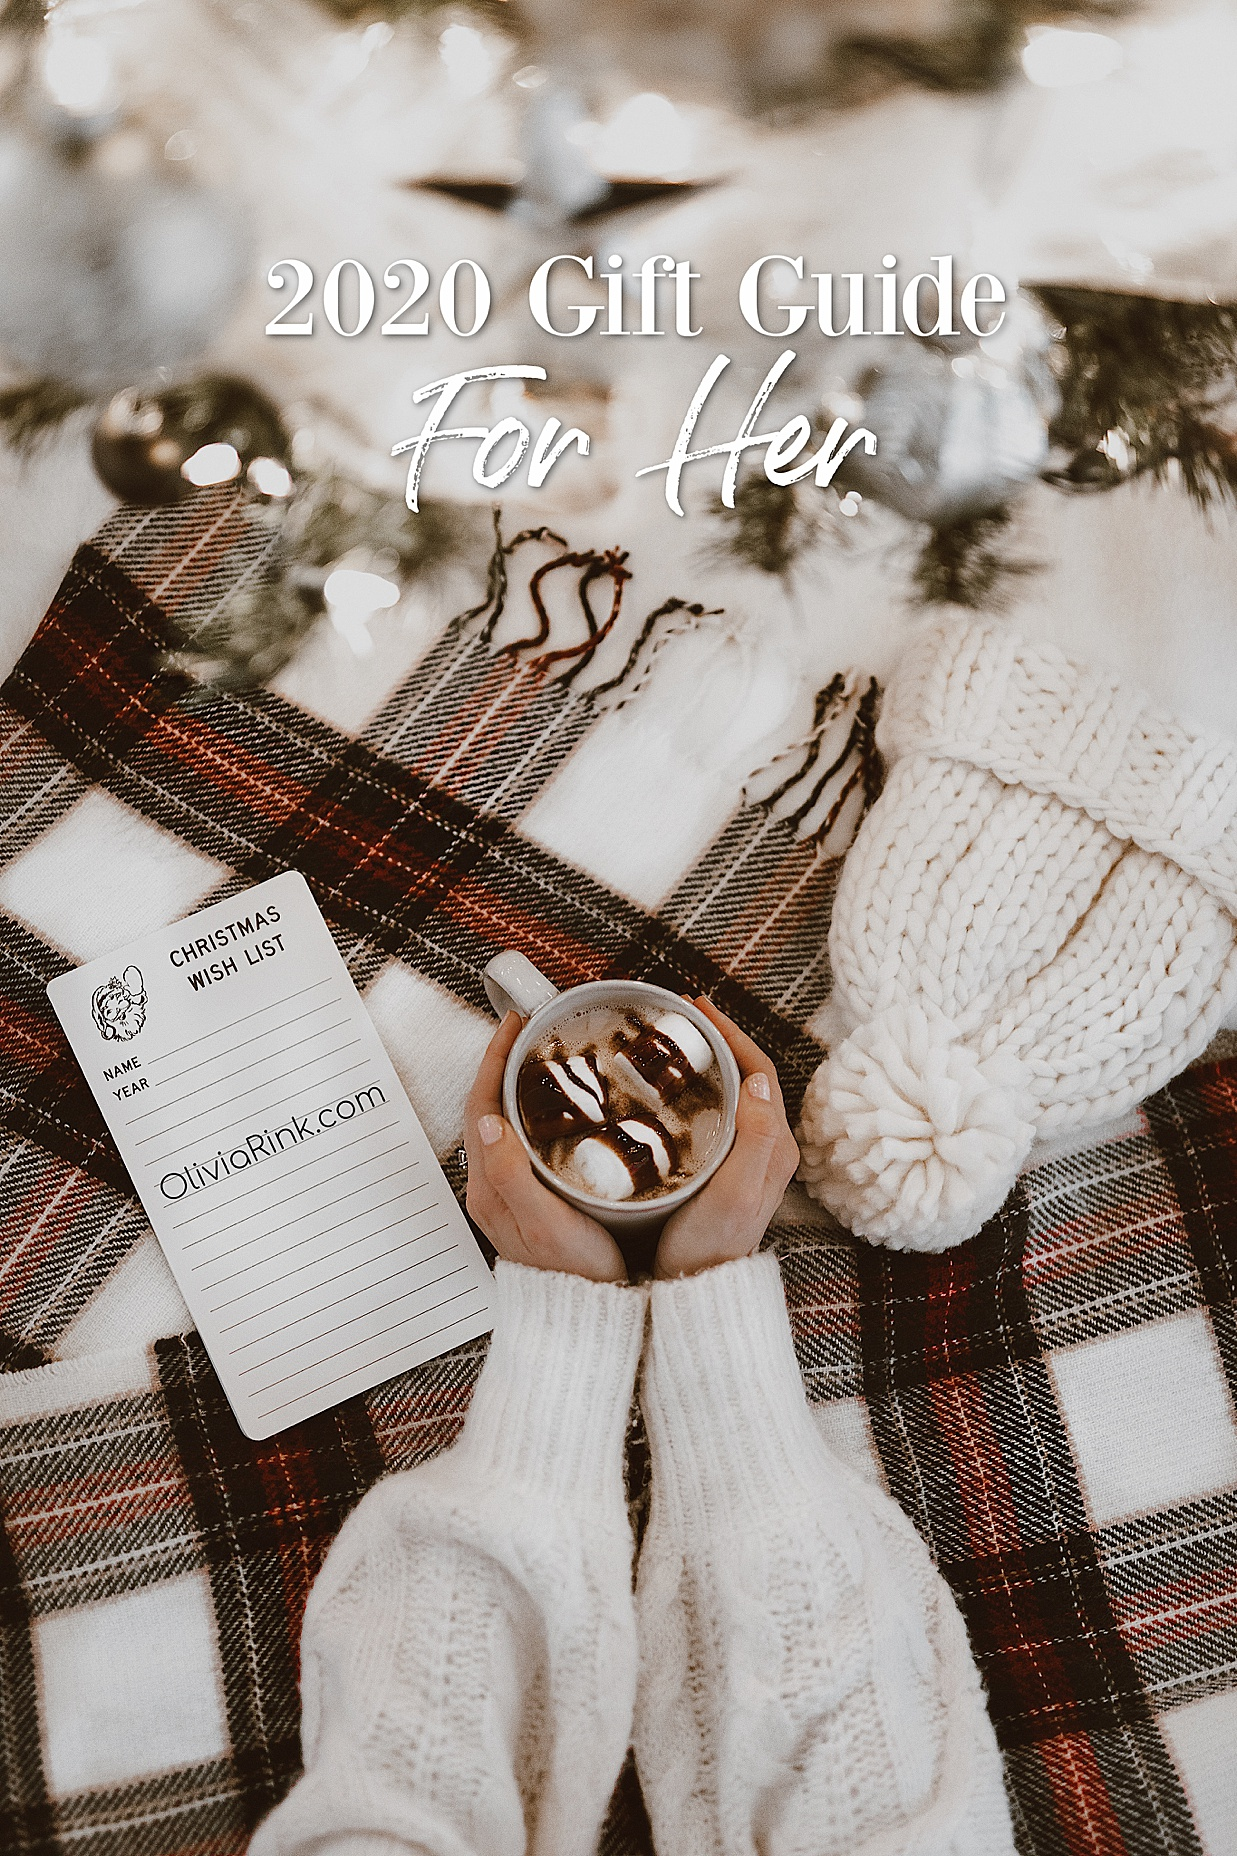 2020 gift guide for her, gift guide for her, christmas gifts for women, christmas gift for girlfriend, christmas gift for wife, blogger gift guide, blogger christmas gifts for her, blogger holiday gift guide, holiday gift guide, 2020 gift guide, 2020 holiday gift guide